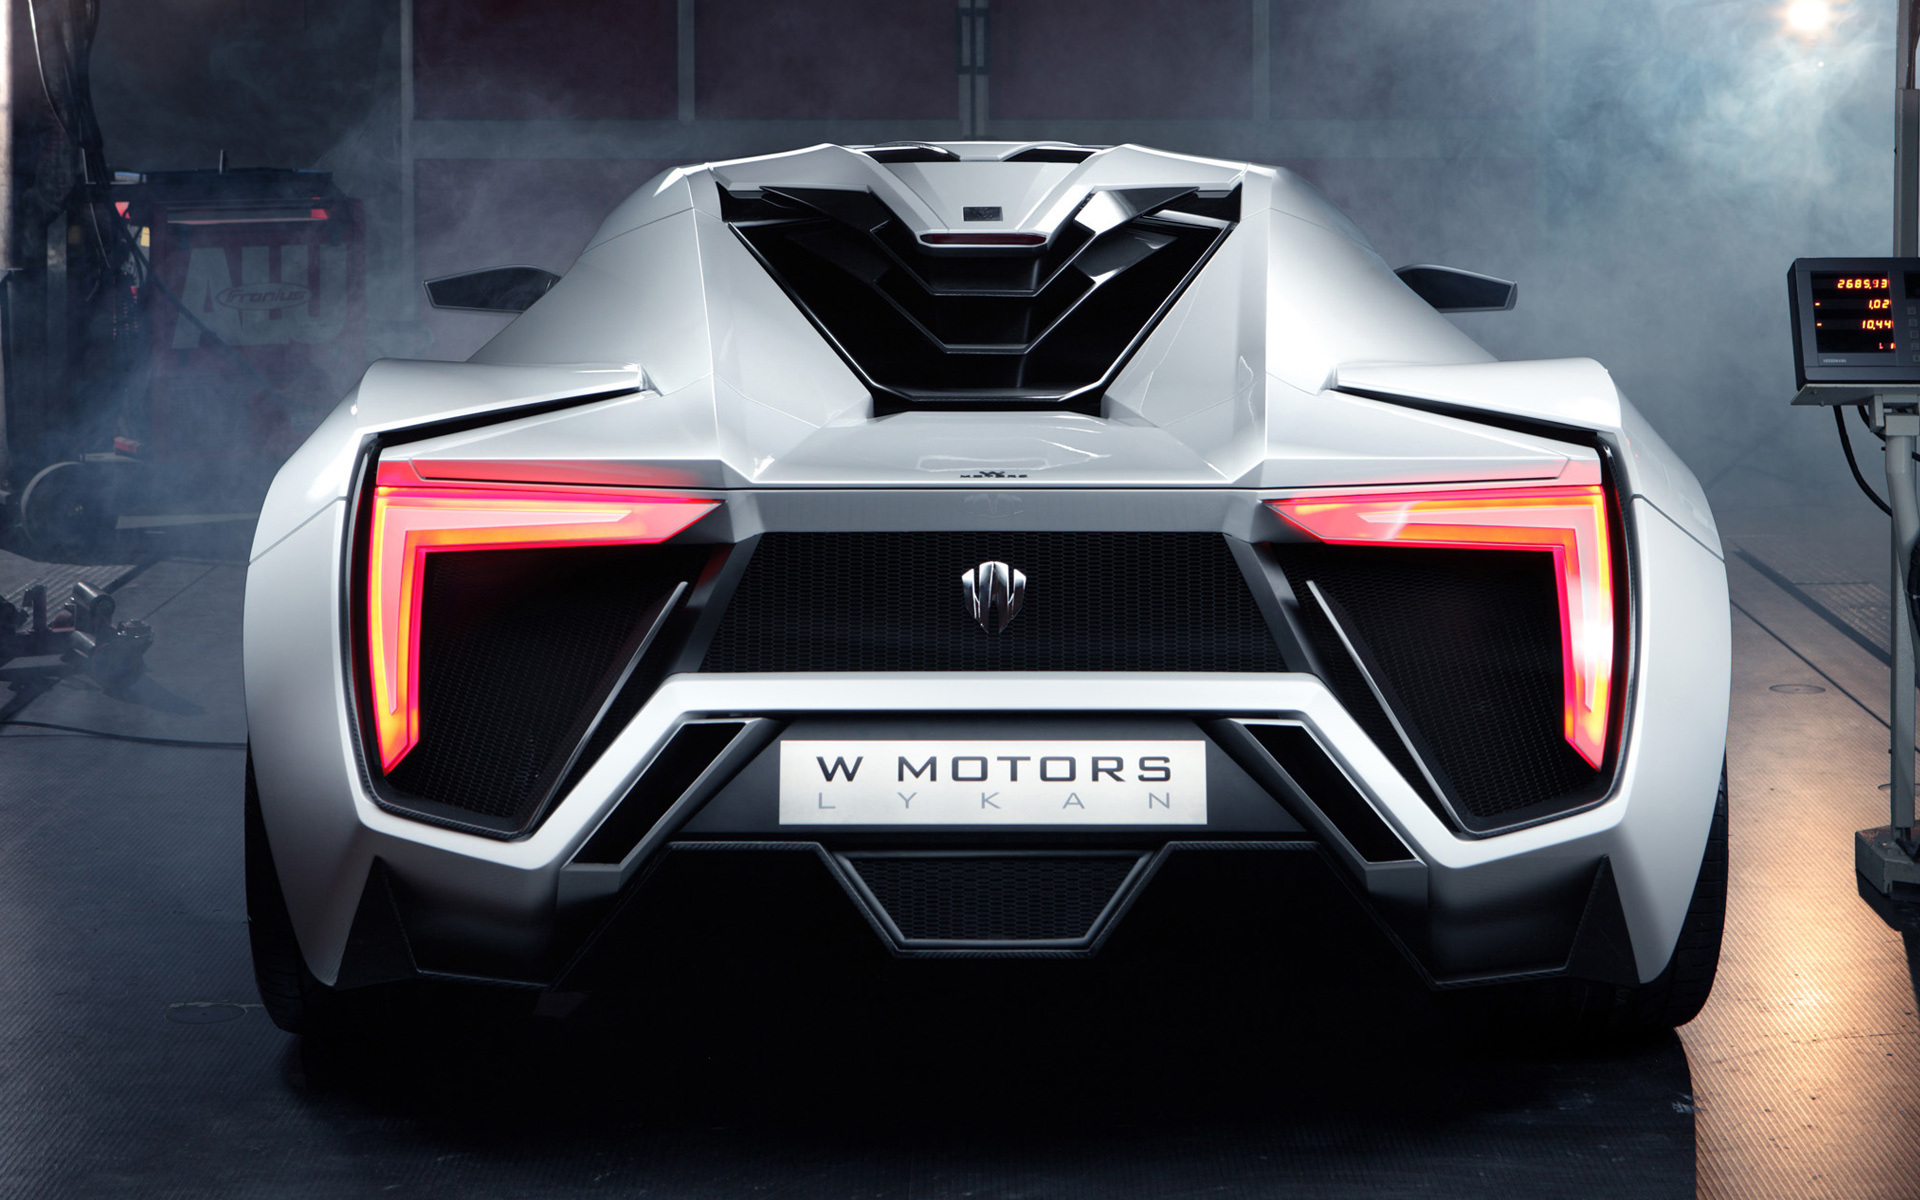 2013 W Motors Lykan Hypersport 4 Wallpaper Hd Car Wallpapers Id 3583